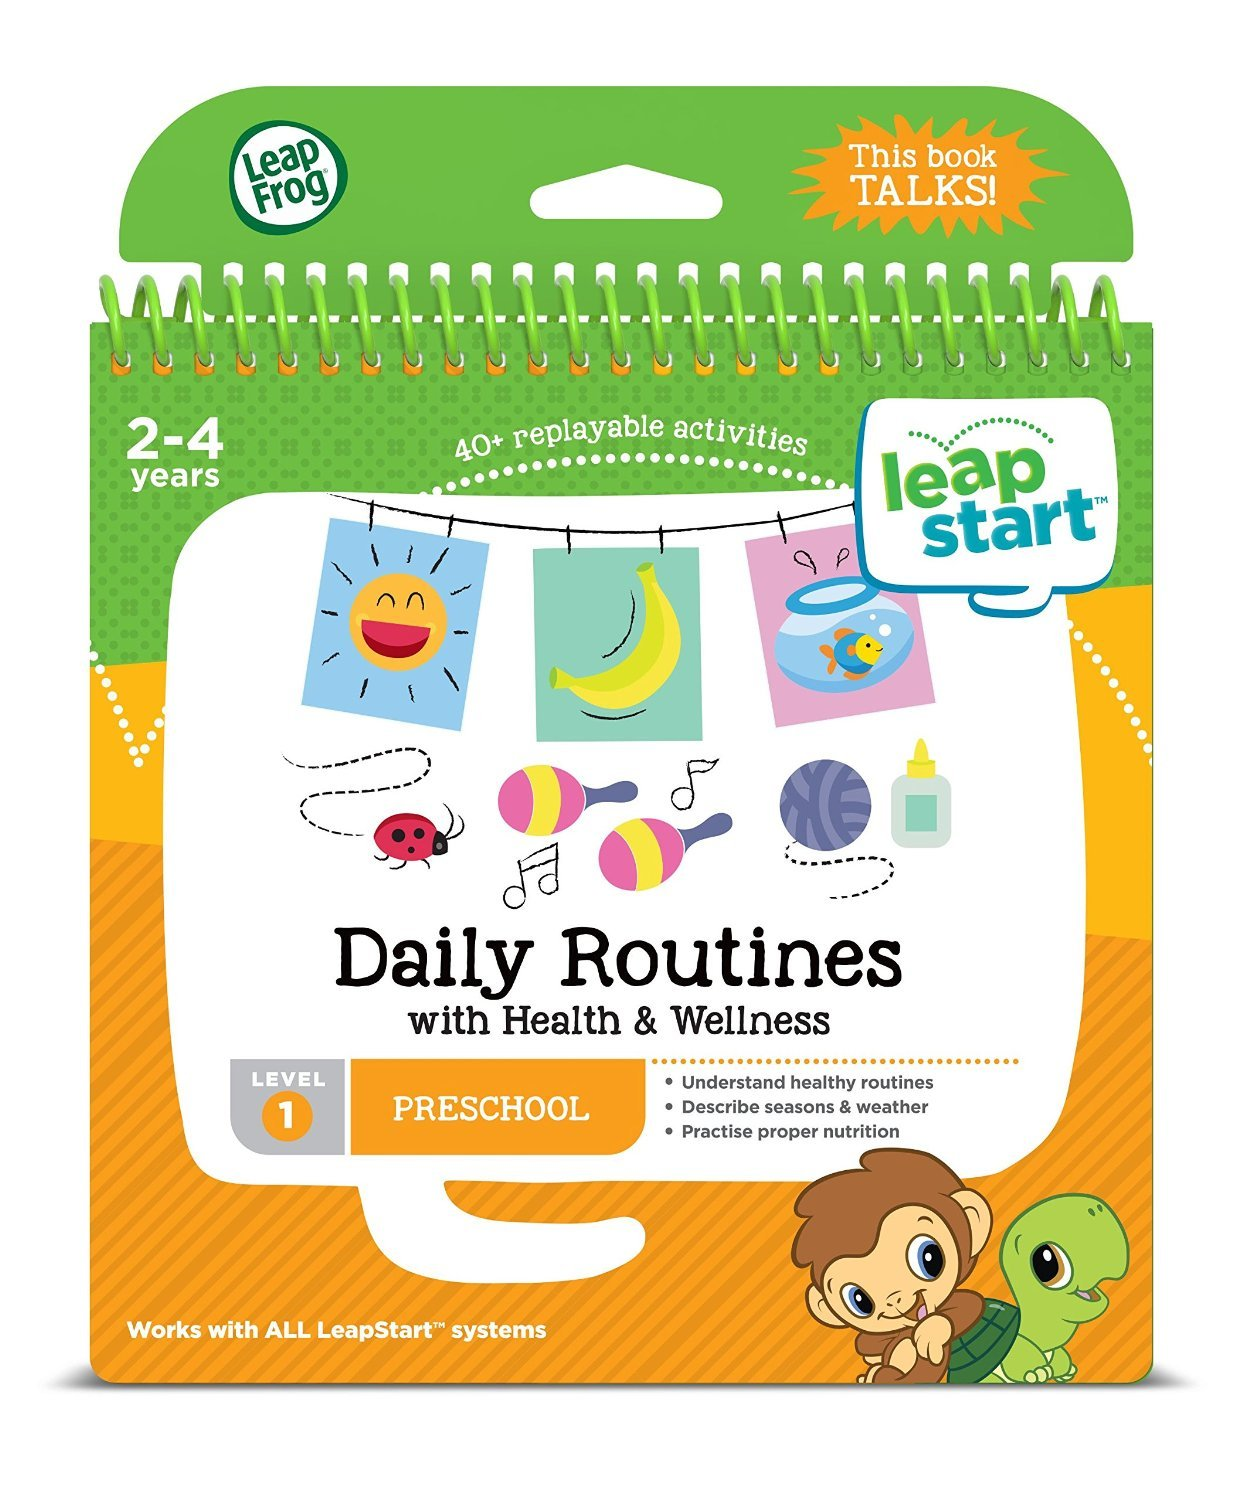 leapfrog leapstart nursery activity book daily routines and health and wellness amazoncouk toys games - Preschool Books About Colors